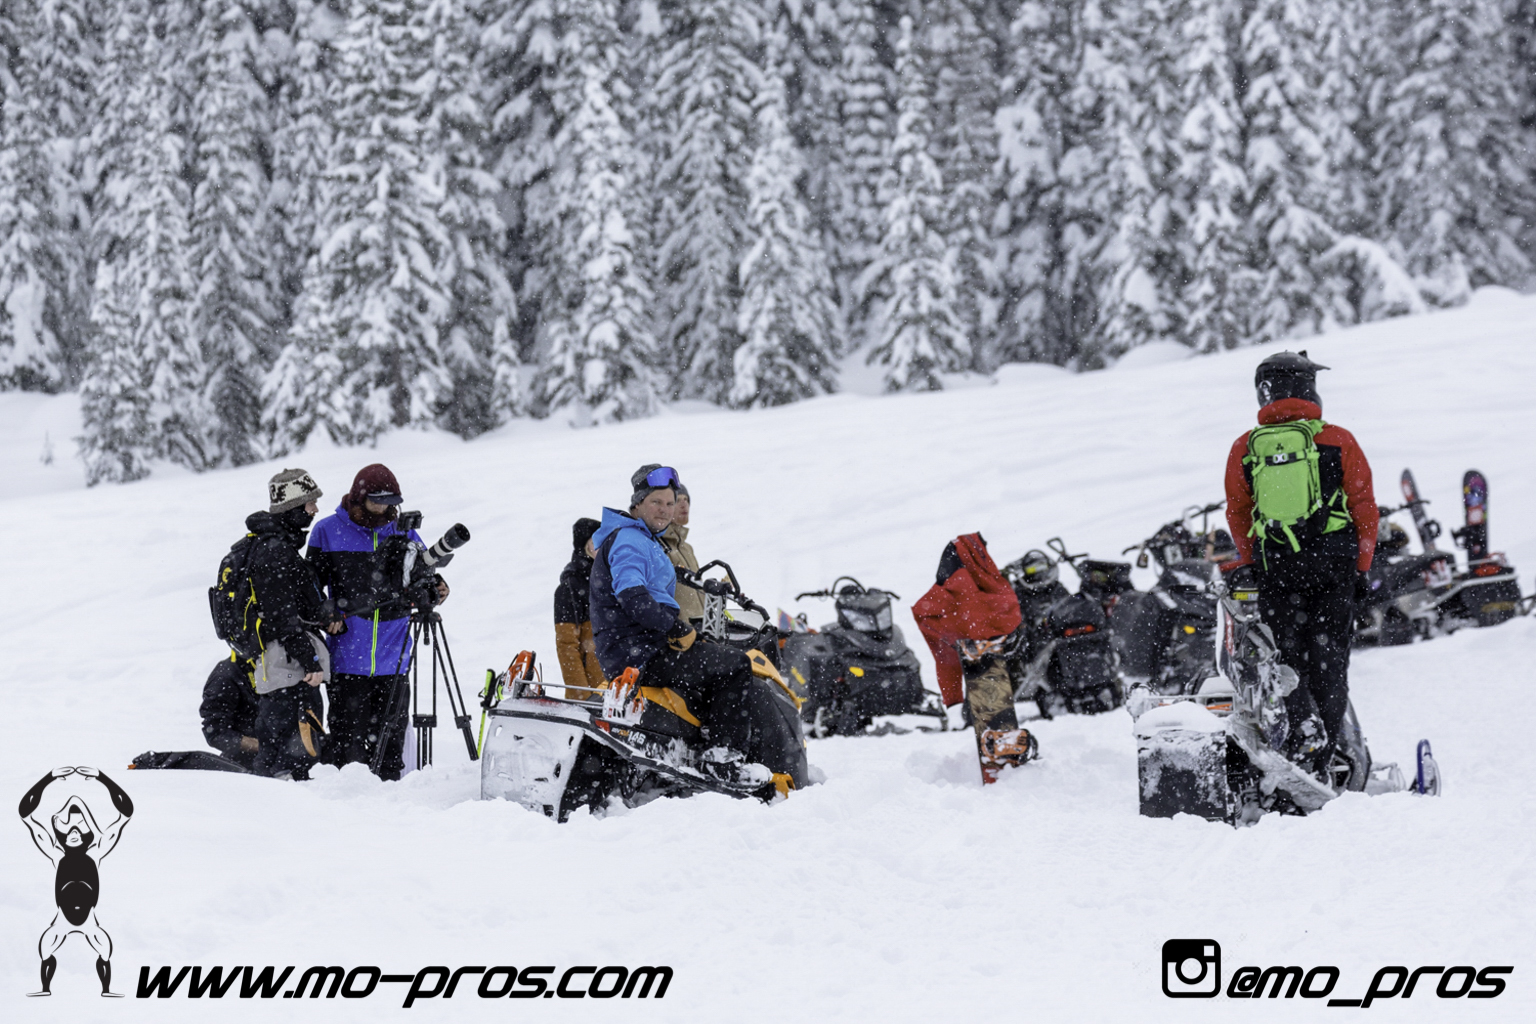 59_Snowbike_Timbersled Rack_Tsaina Rack_CFR rack_Cheetah Factory Racing_Snowboard rack_snowboard_snowmobile bag_Snowmobile_timbersled bag_gas Rack_Gear_Gun Rack_LinQ Snowboard Ski_Ski_Snowboarding_Ti.jpg